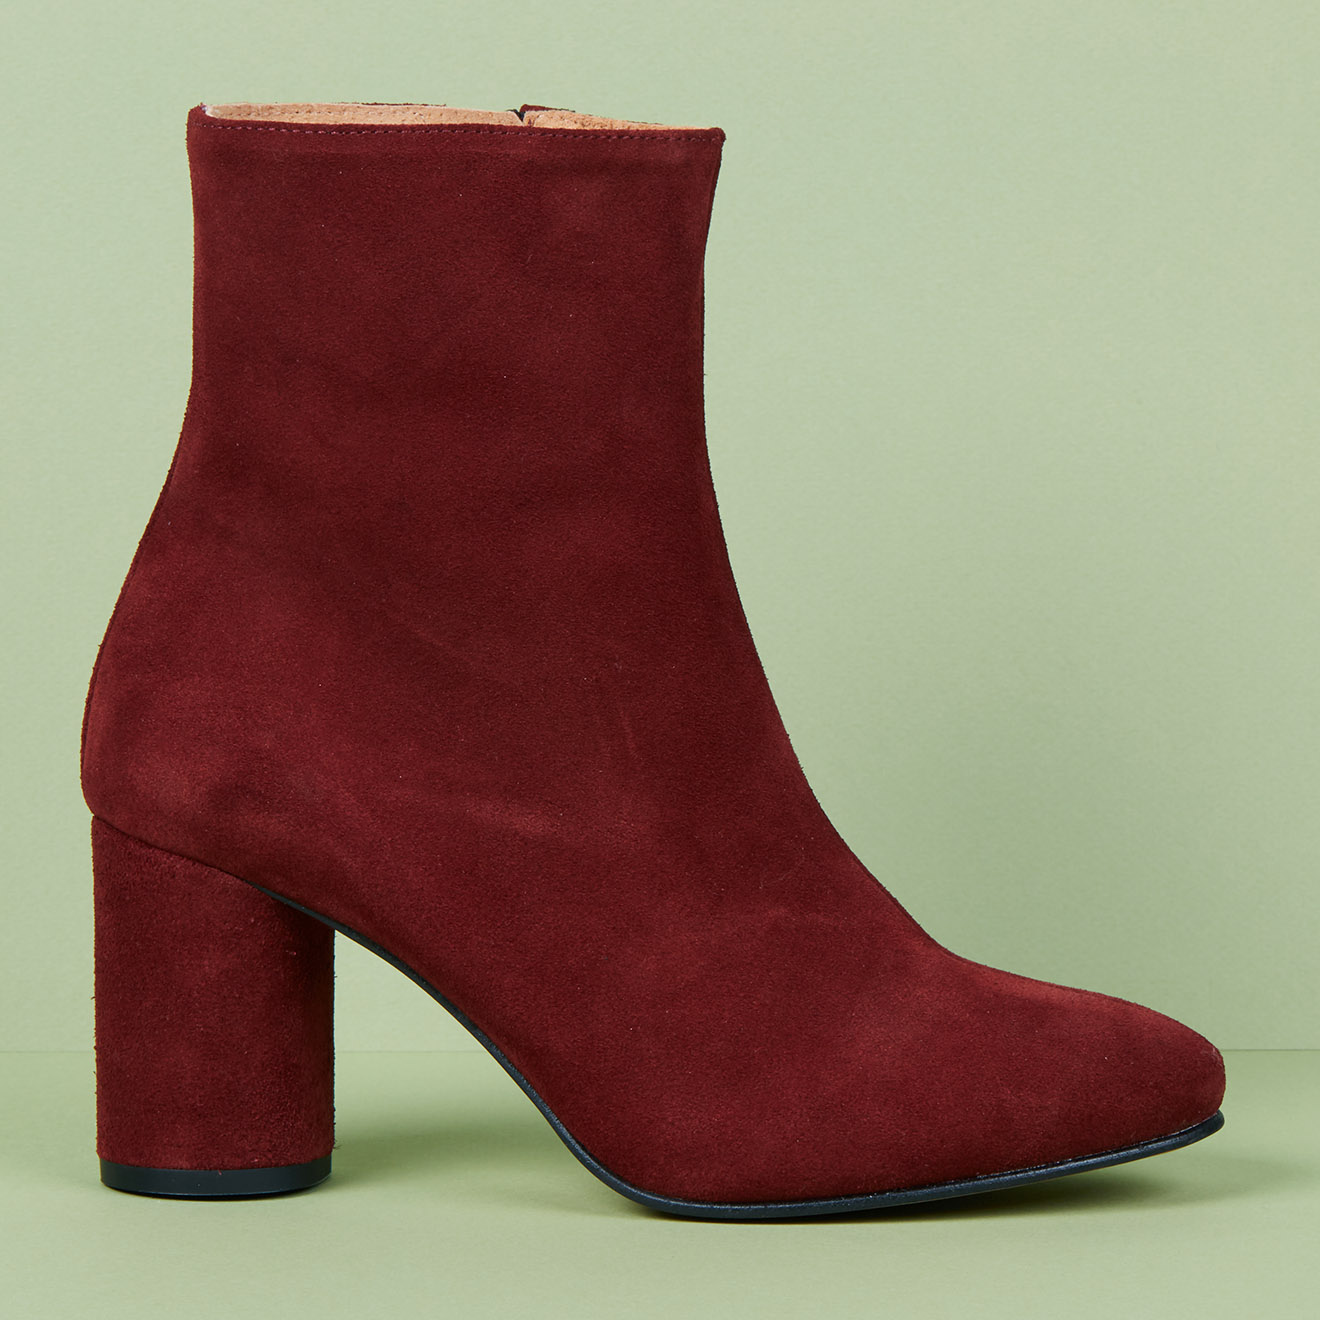 Bottines en Velours de Cuir bordeaux - Talon 7.5 cm - Apologie - Modalova